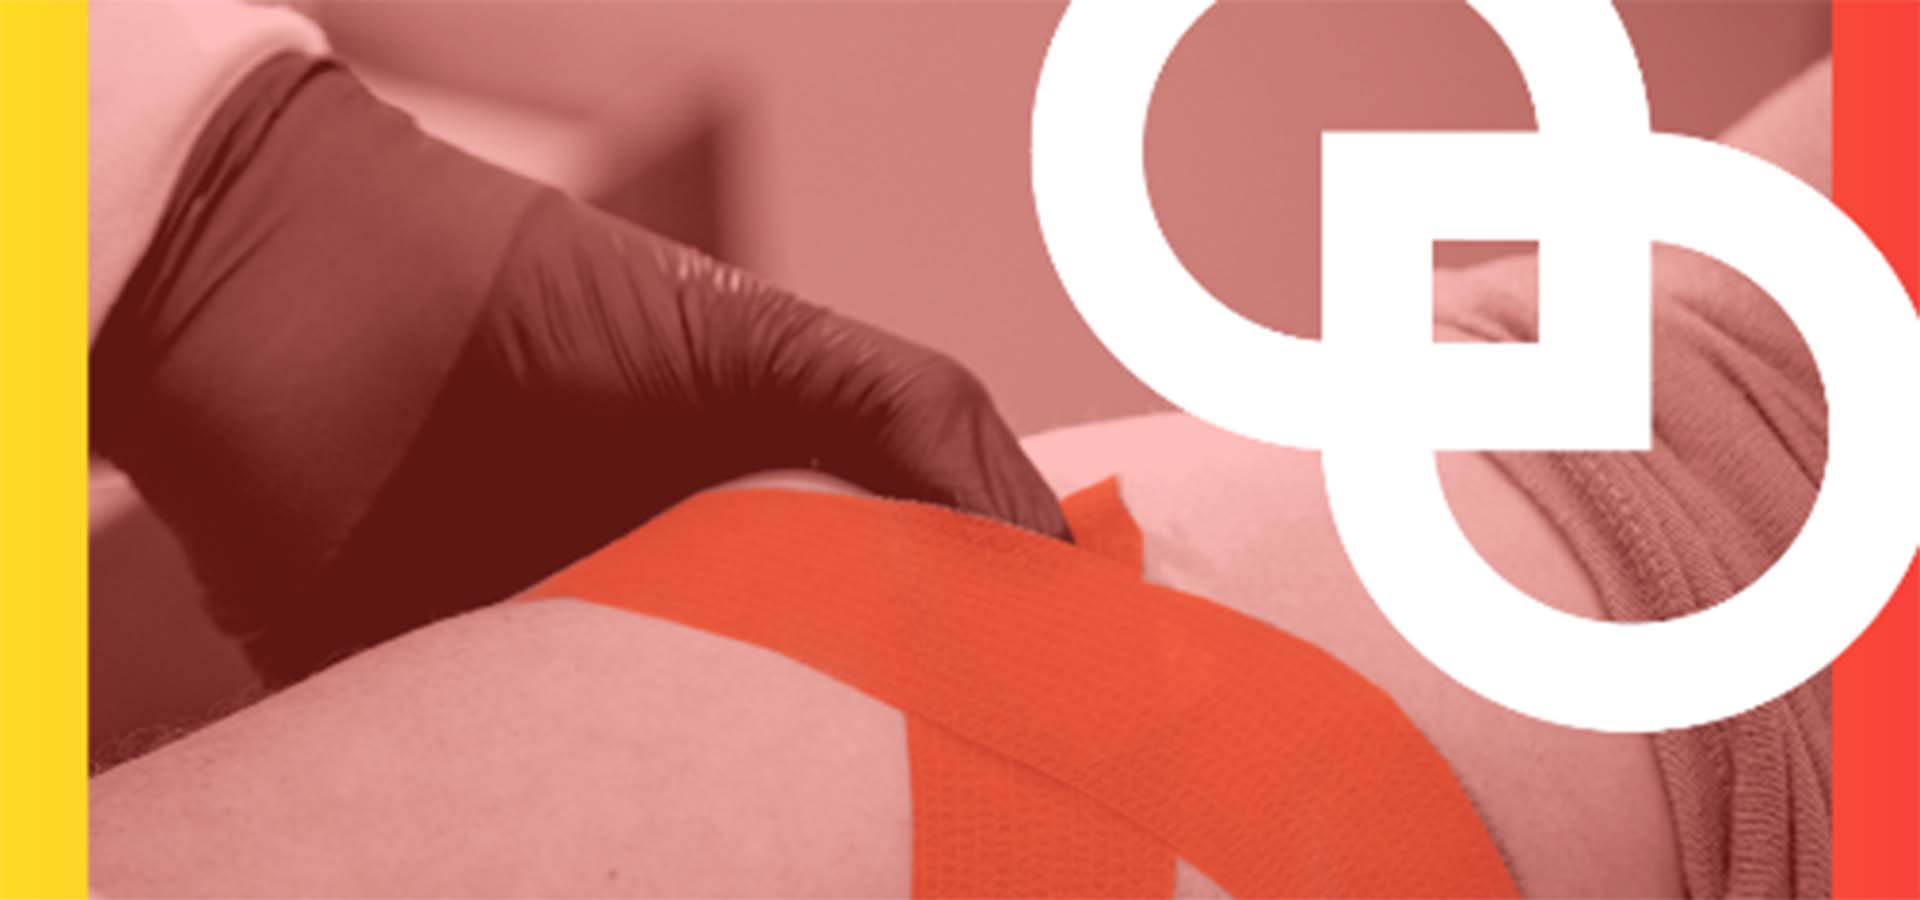 Graphic of an arm being wrapped with tape after donating blood.